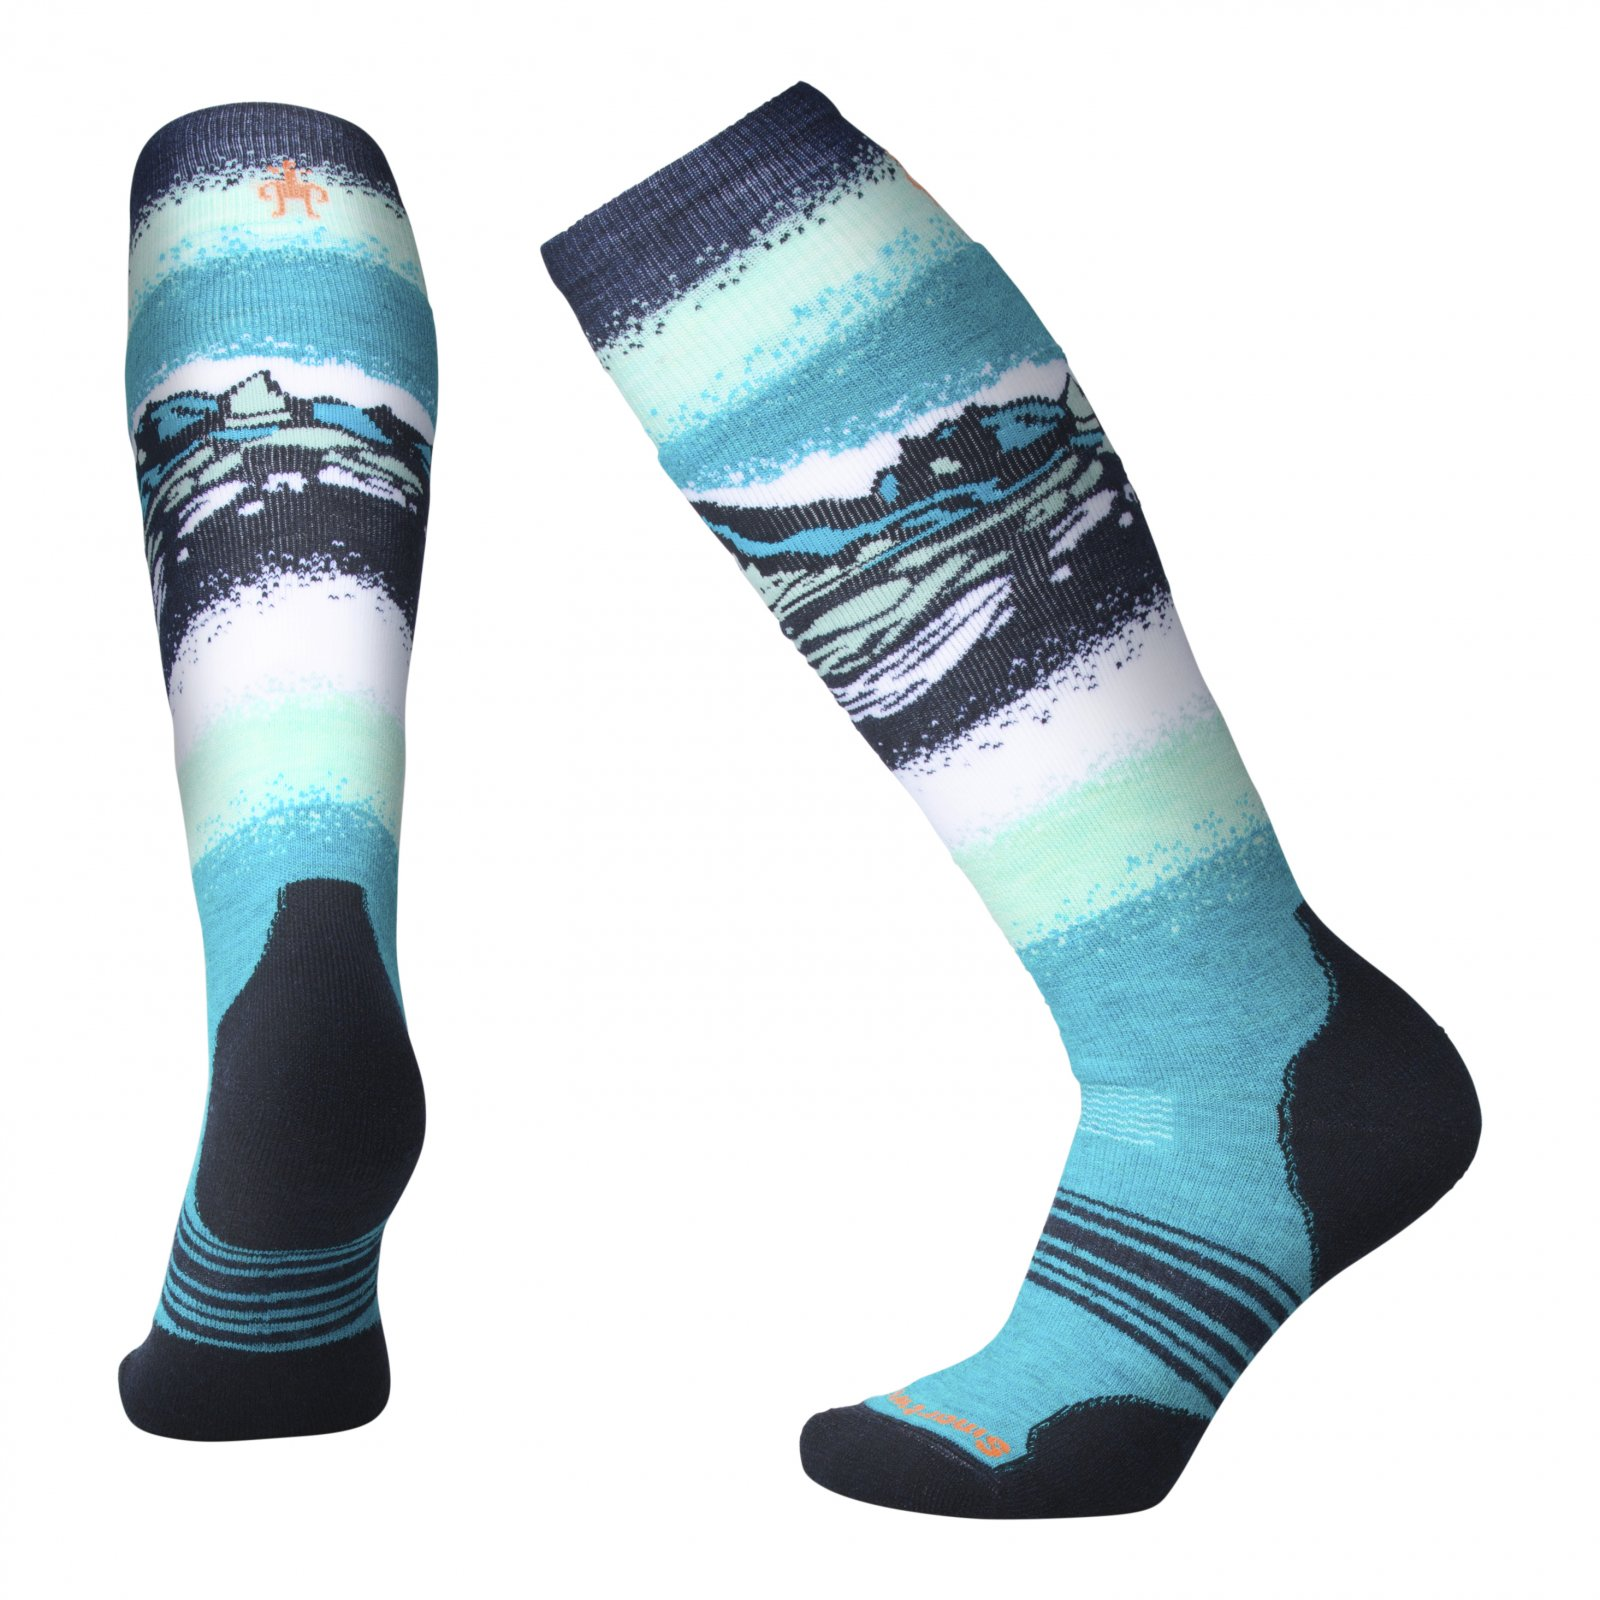 Smartwool Women's Phd Slopestyle Medium Bryan Iguchi Series